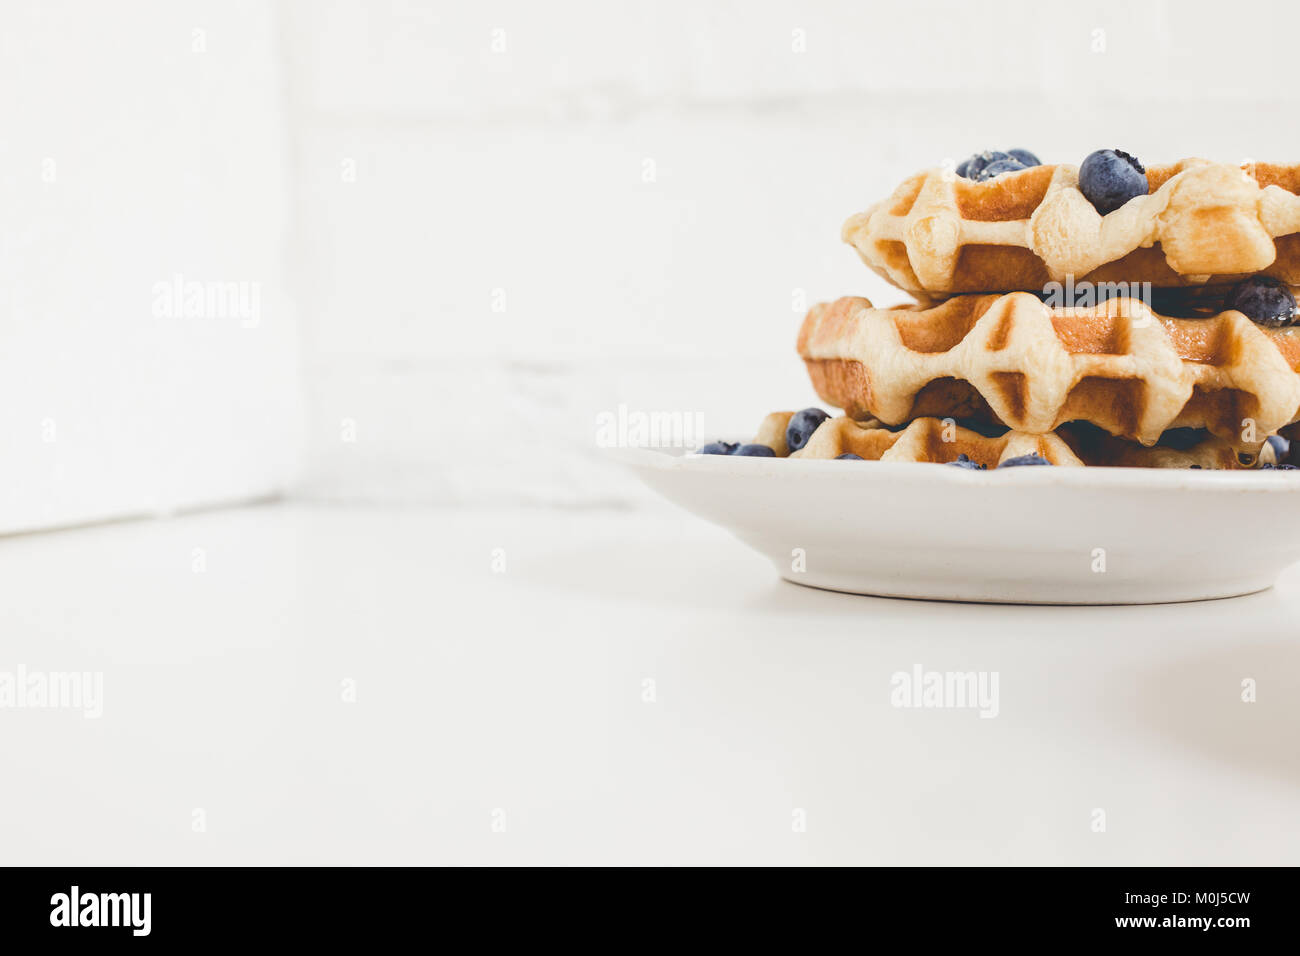 plate of delicious fresh waffles with blueberries - Stock Image